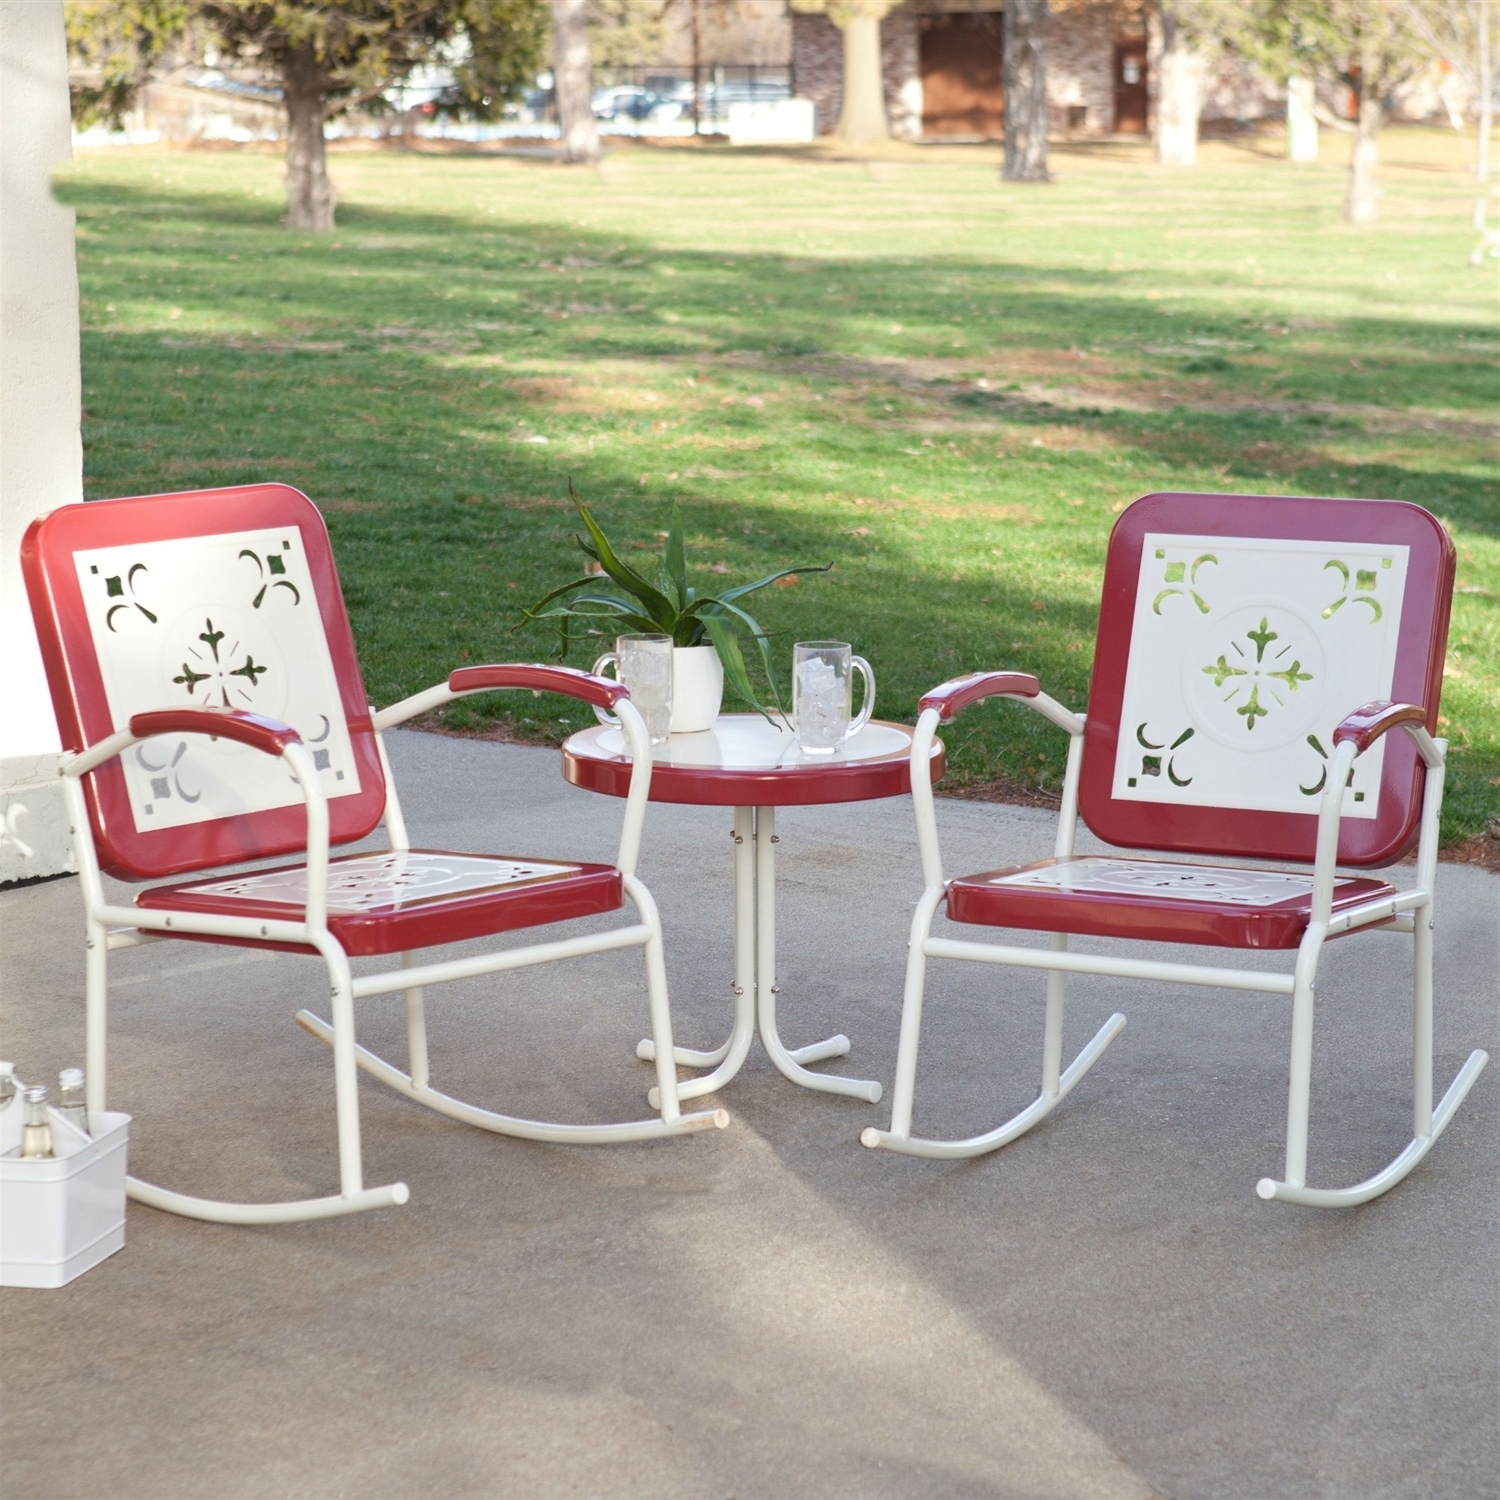 Patio Rocking Chairs And Table For Preferred Cherry Red Retro Patio 3 Pc (View 3 of 20)